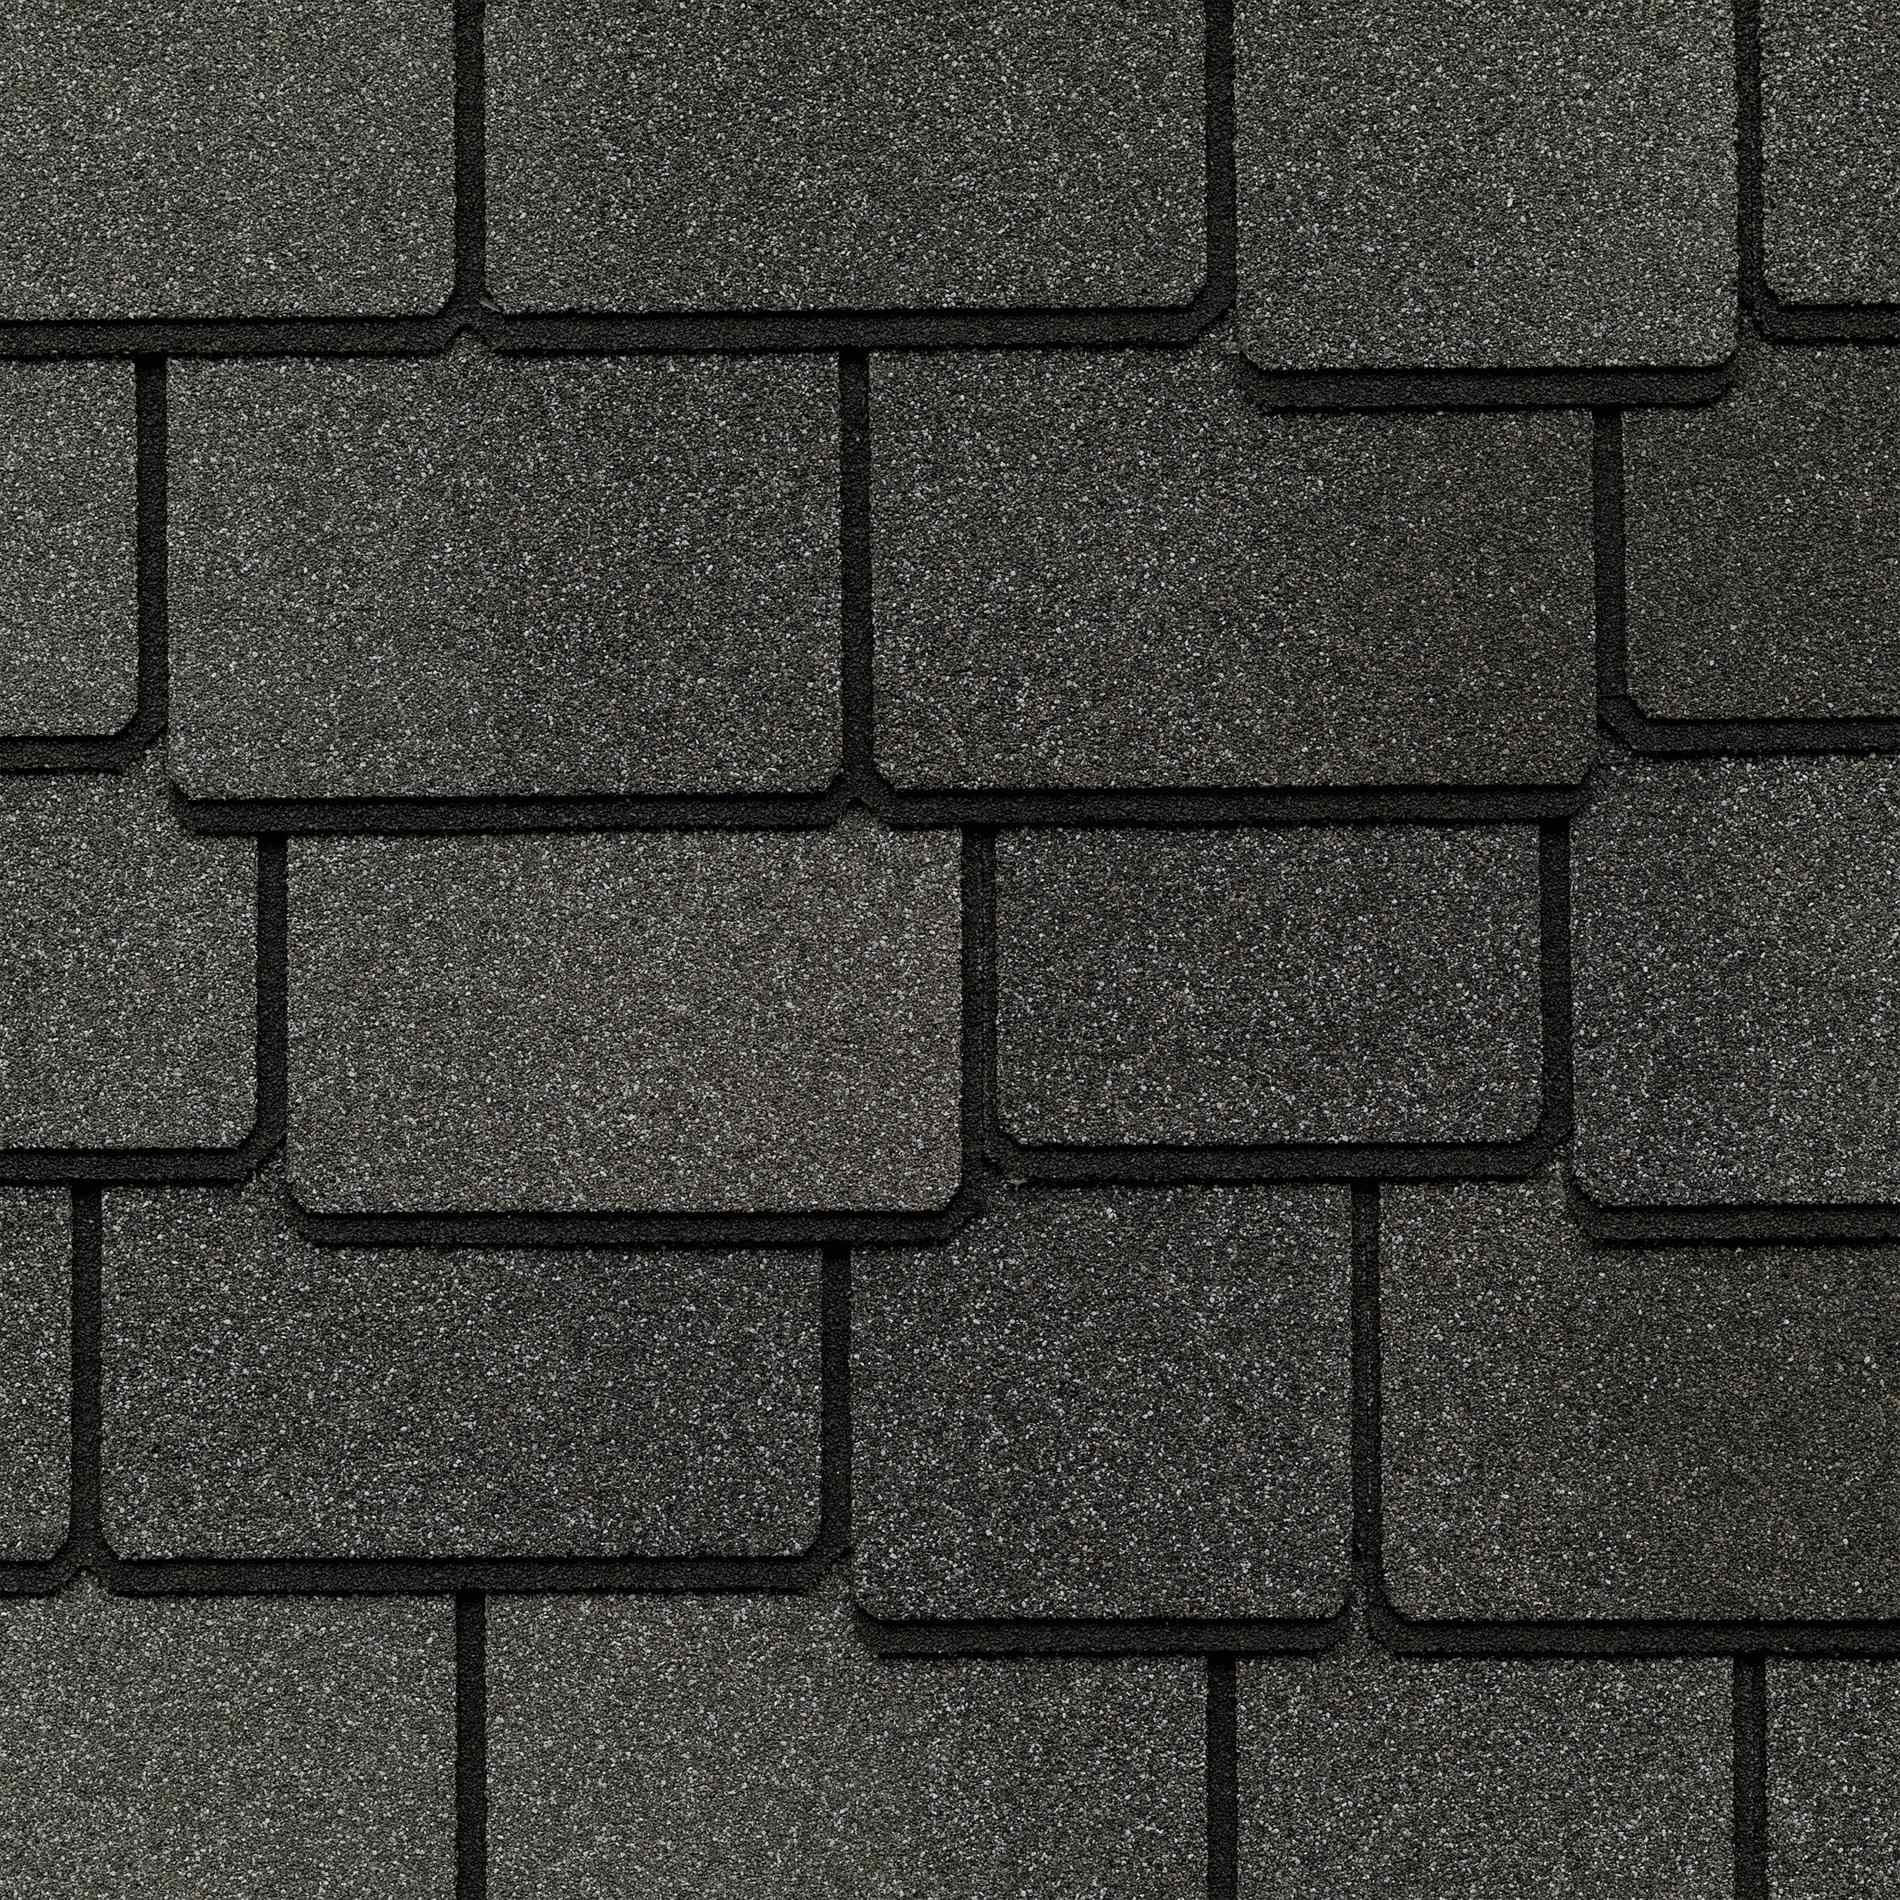 Best 3 Tab Roof Shingles Vs Architectural Shingles In 2019 400 x 300